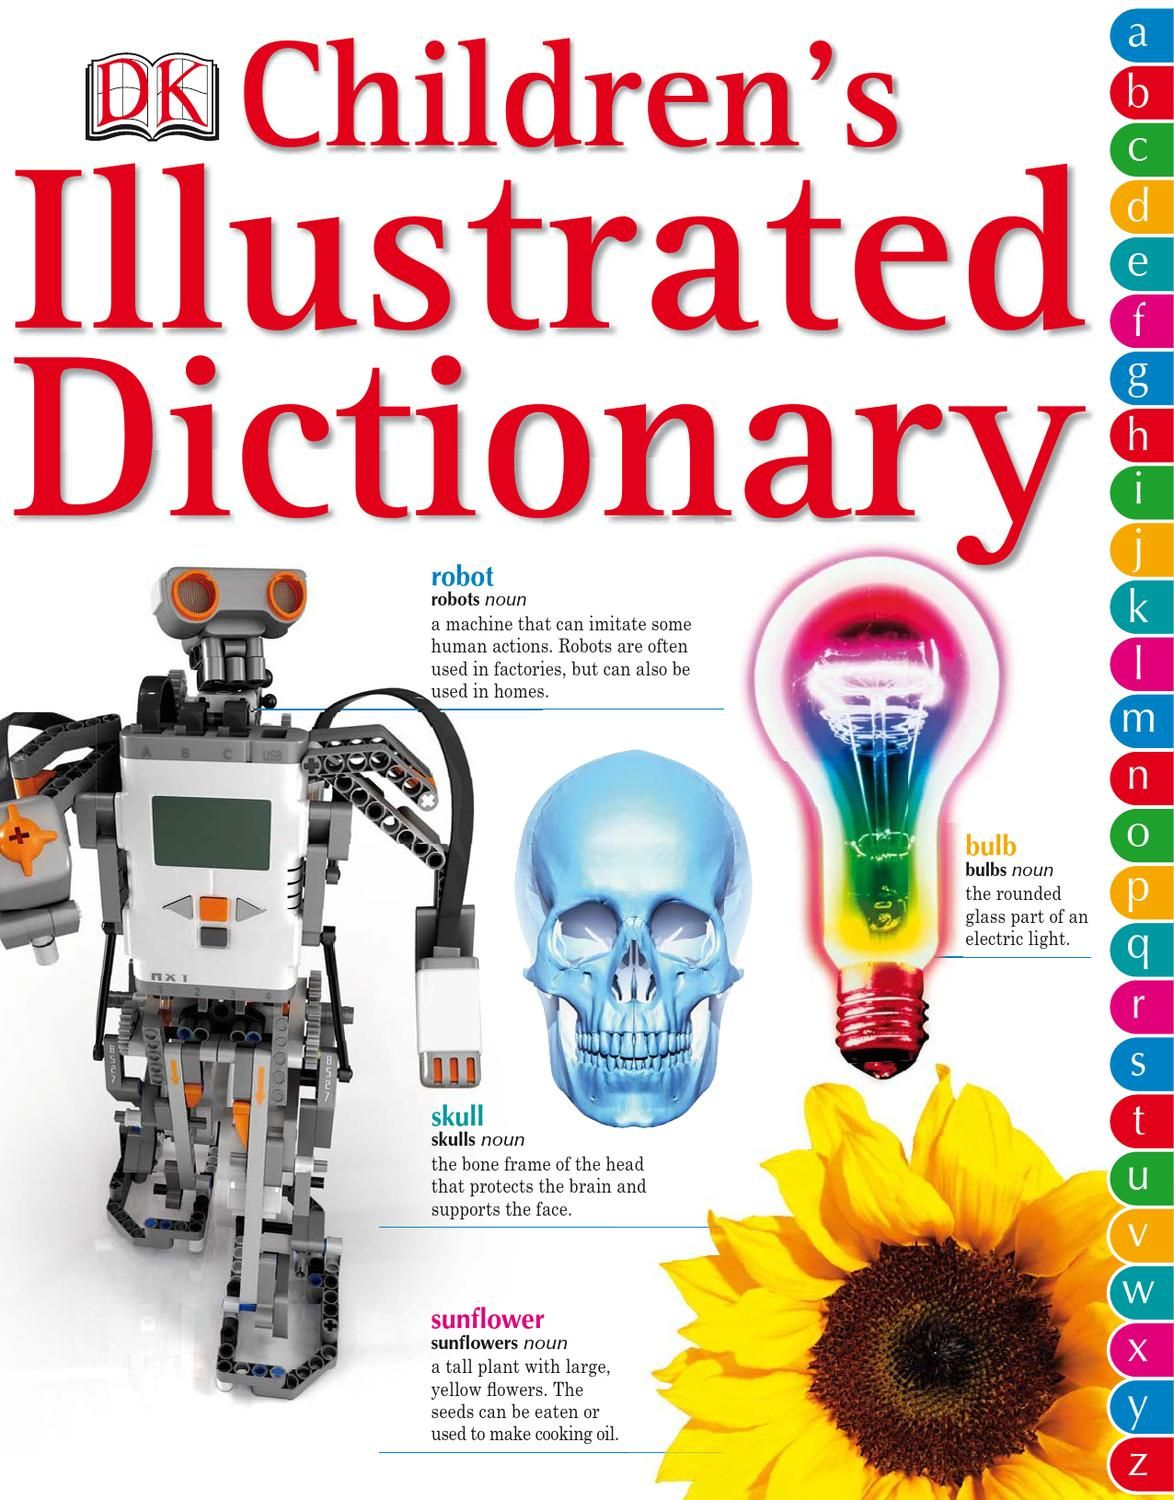 Picture dictionary children dictionary book pinterest picture by hazir okul fandeluxe Gallery